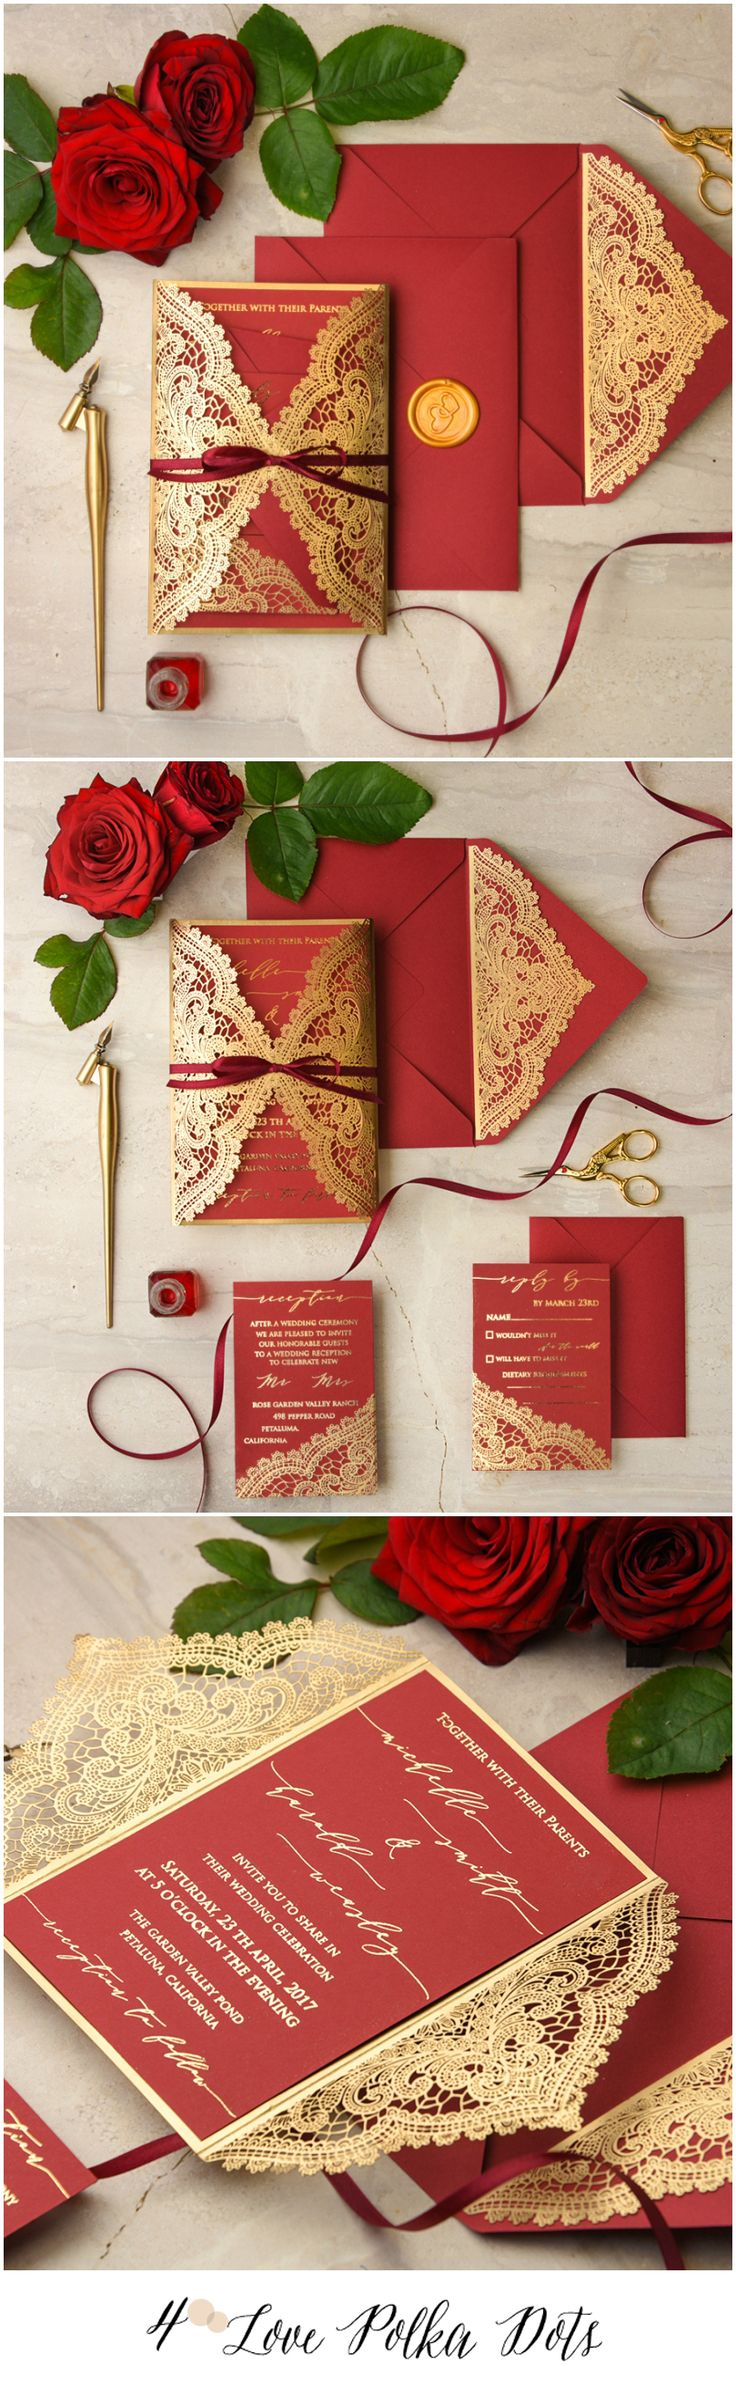 370 best Wedding Invitations images on Pinterest | Bridal ...